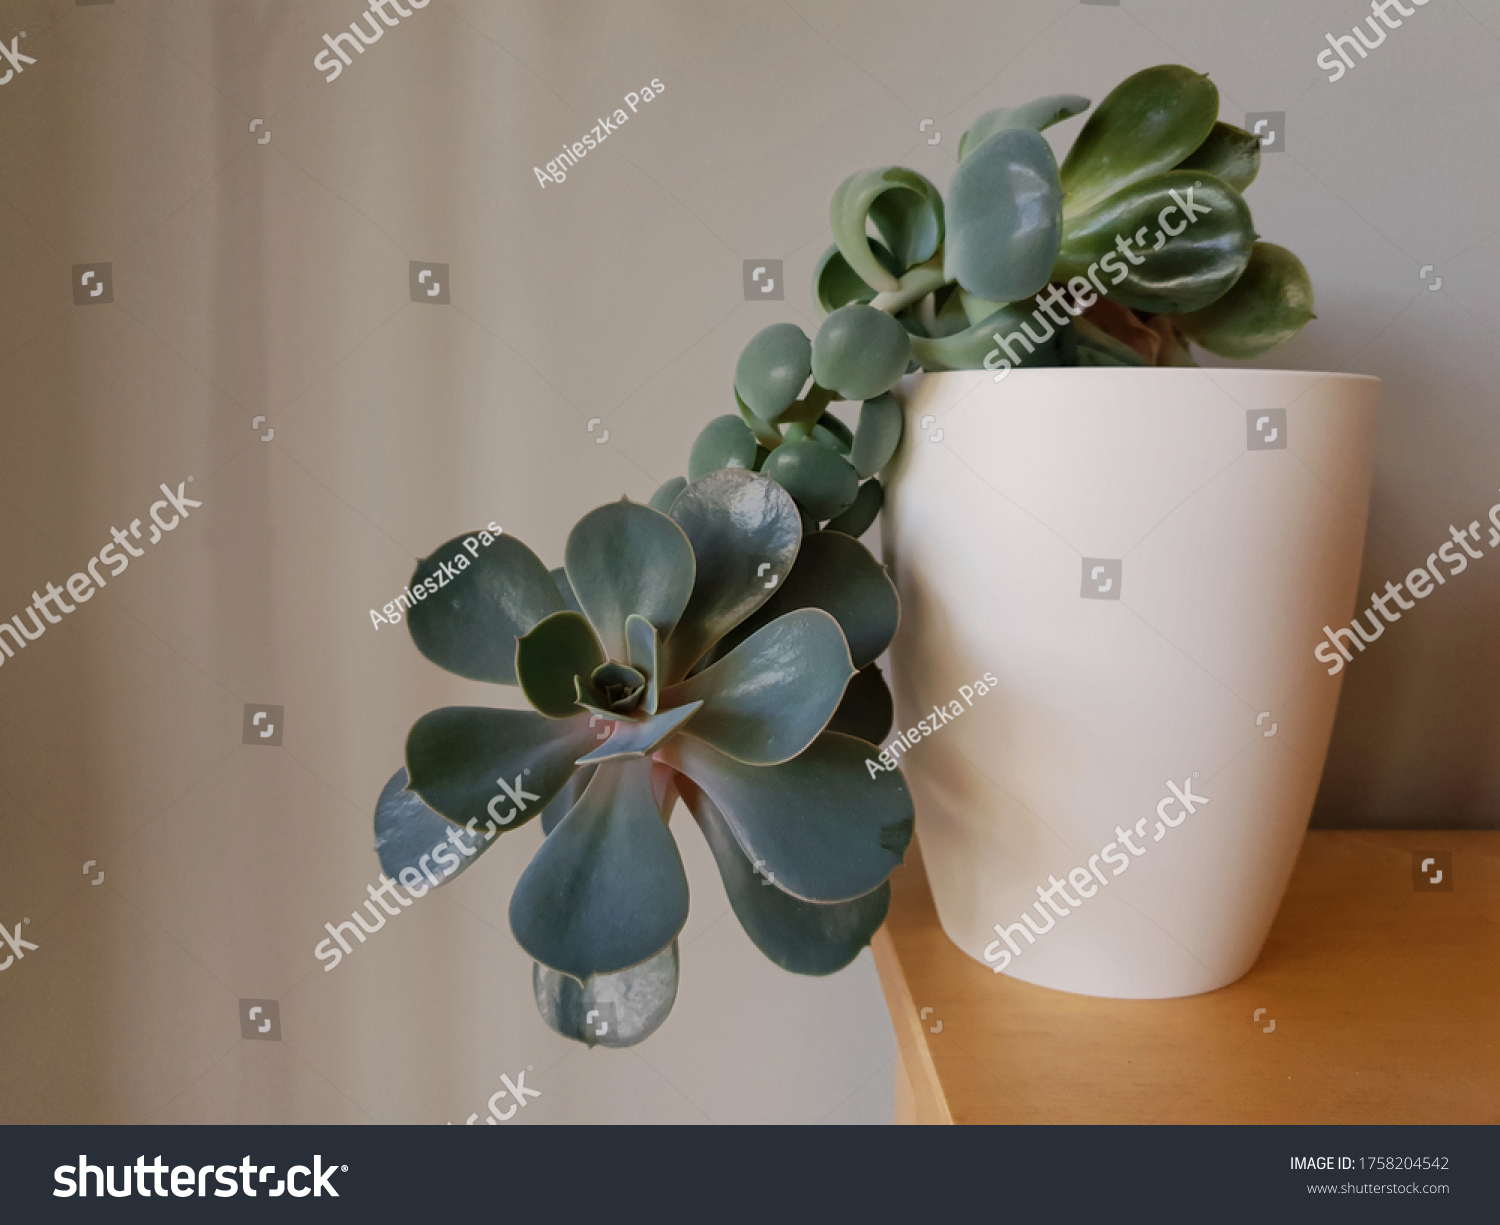 stock-photo-echeveria-plant-echeveria-gi